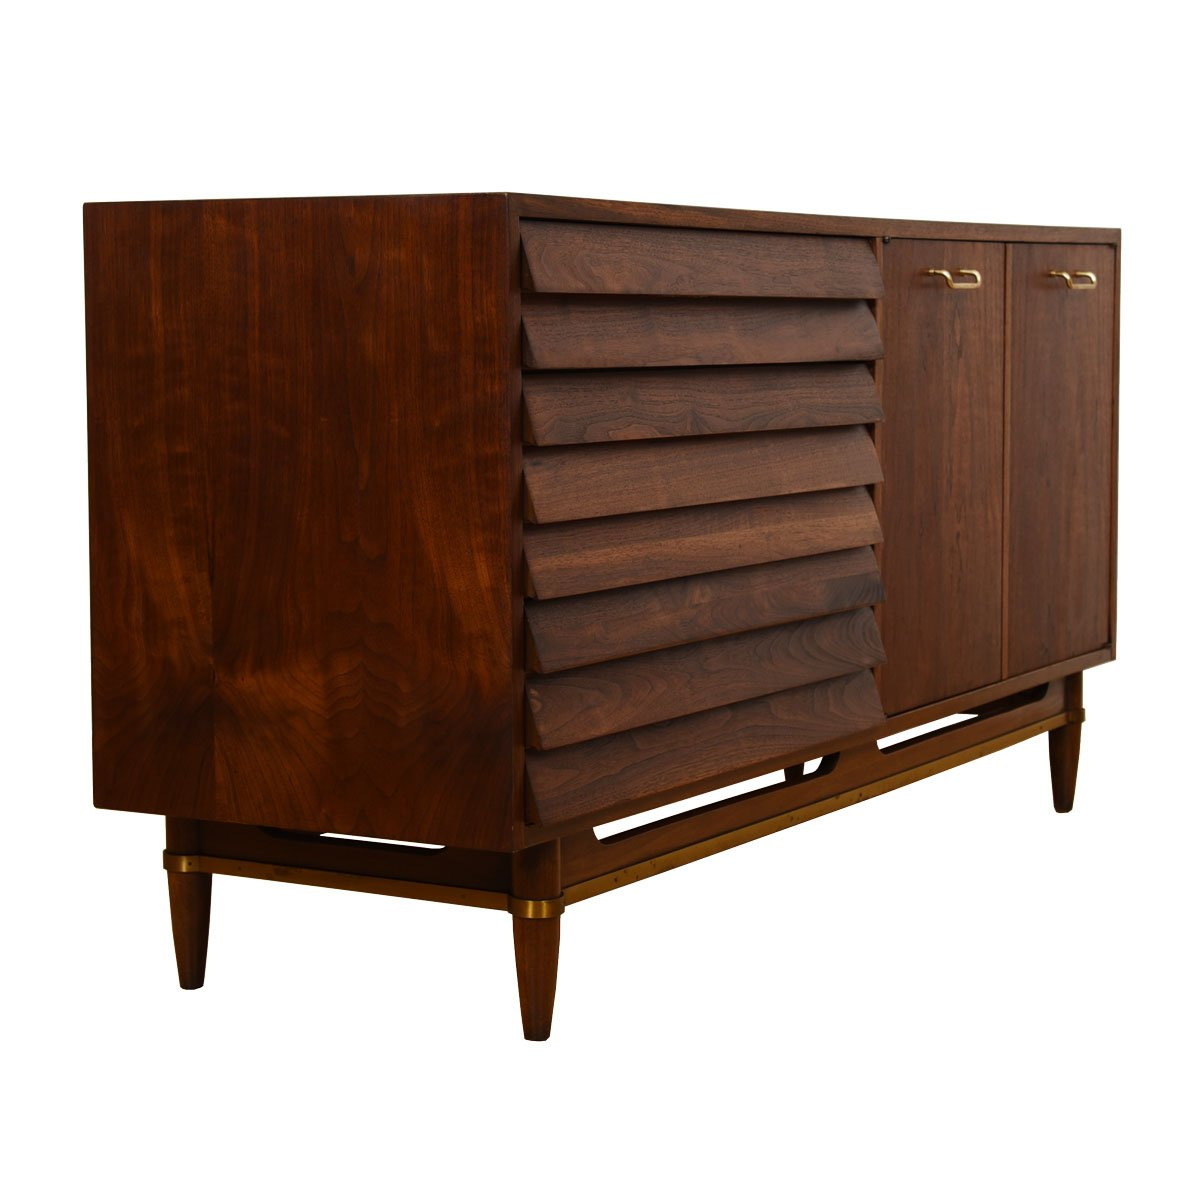 Compact Mid Century Modern Walnut Slatted Front Dresser / Sideboard